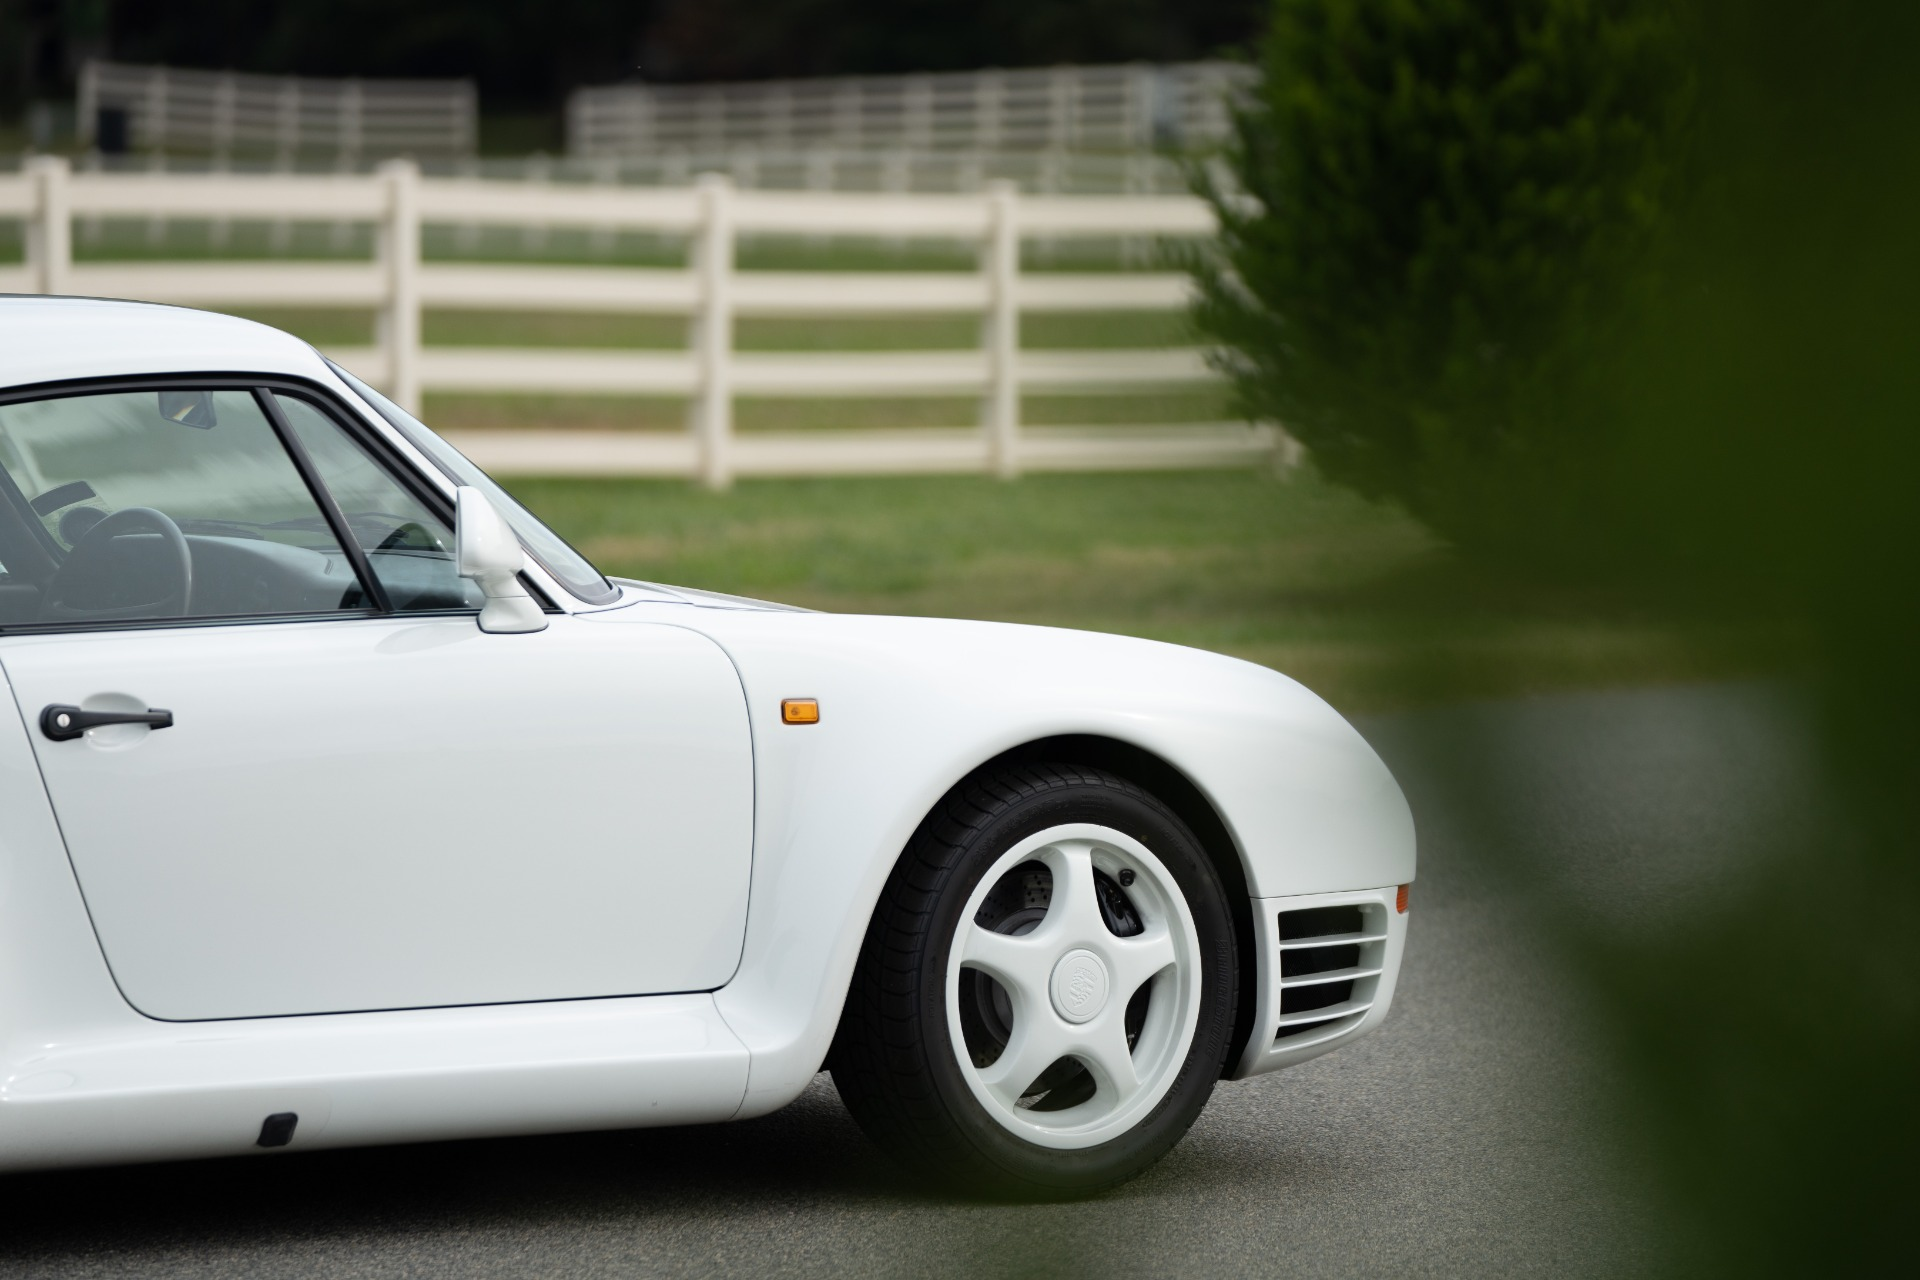 Used 1988 Porsche 959 KOMFORT COUPE / AWD / 6-SPEED MANUAL / ORIGINAL SUPERCAR for sale $1,399,999 at Formula Imports in Charlotte NC 28227 29